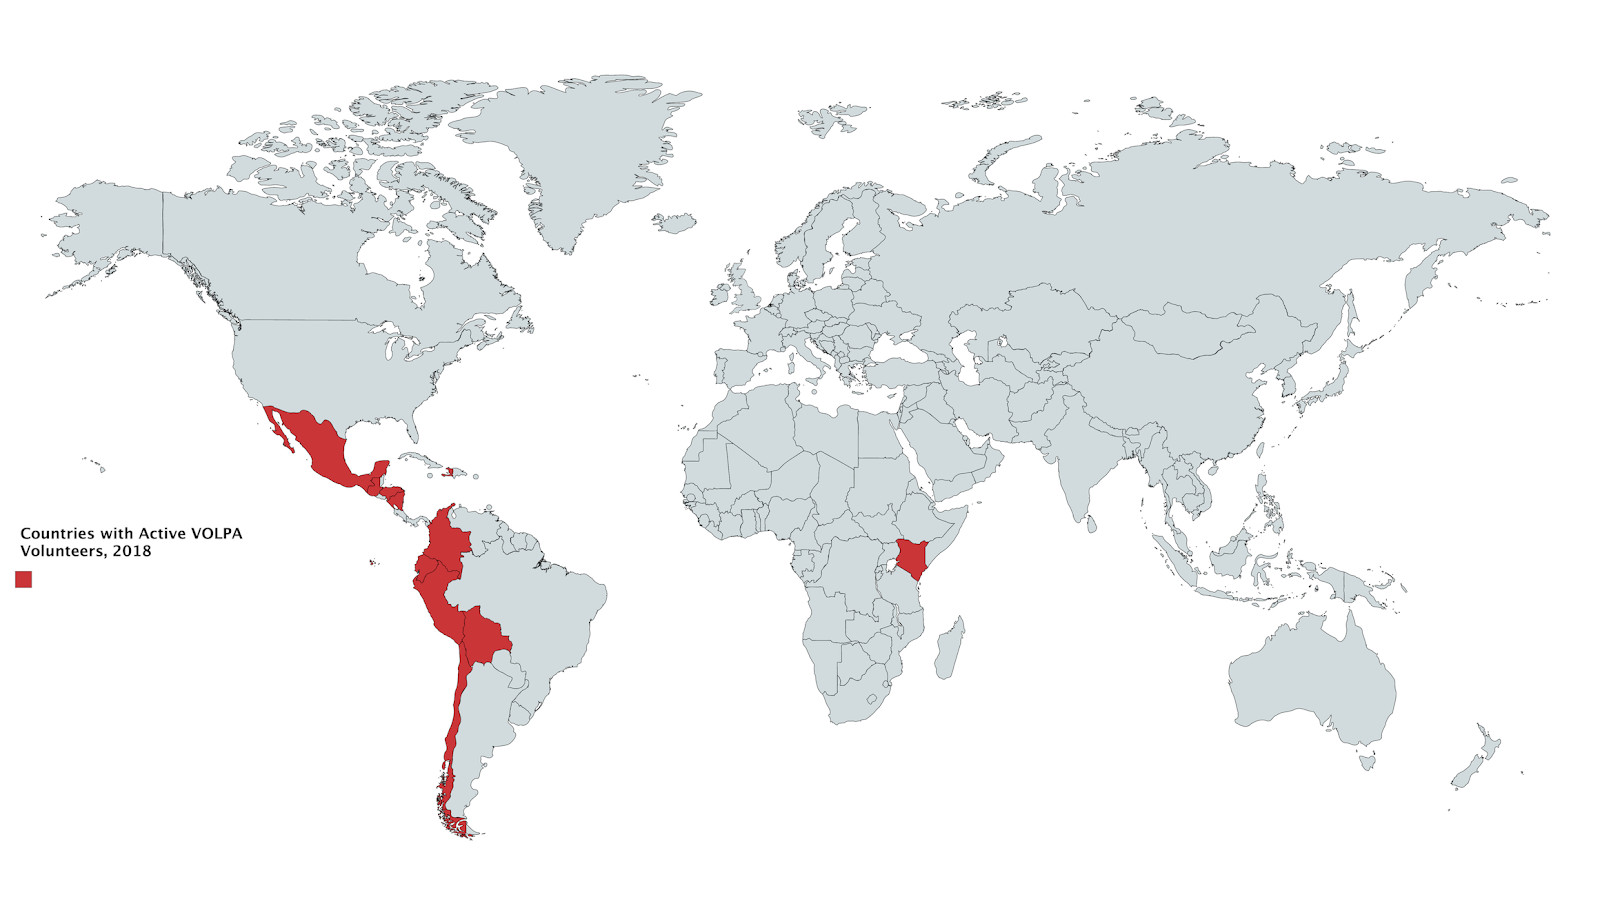 Map highlighting the countries with active VOLPA volunteers in 2018